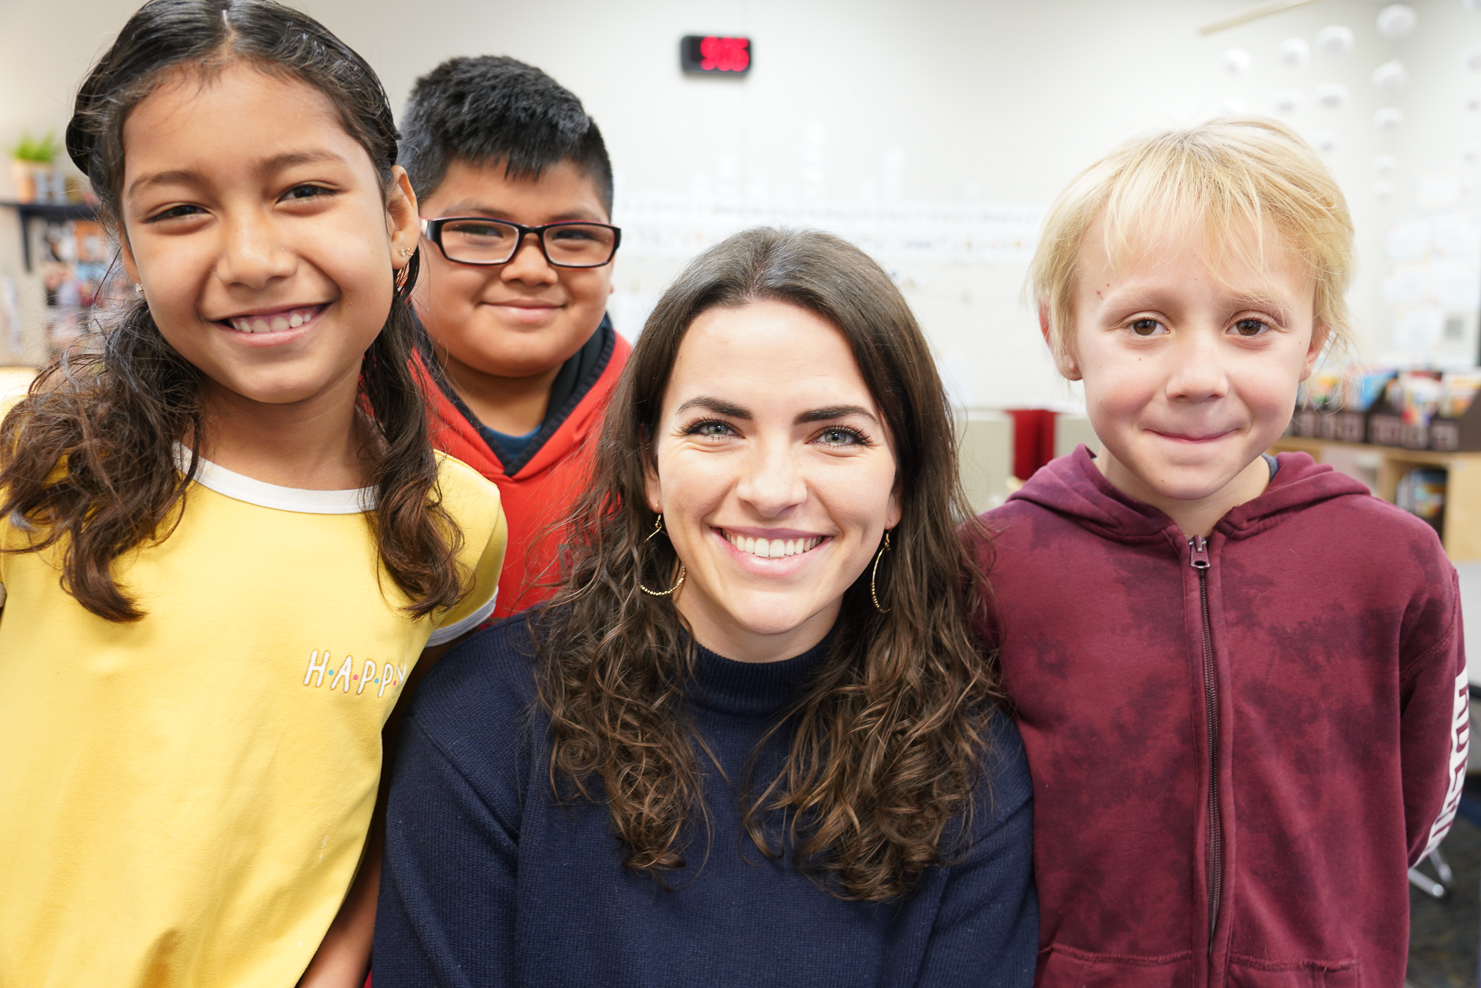 """Rosa Parks Elementary – Brittany Hamilton, 3rd Grade Third grade teacher Brittany Hamilton was named the 2019-2020 Teacher of the Year for Rosa Parks Elementary School. She has been with Union since 2016. Hamilton said, """"I became a teacher because of the wonderful examples set by my mom and by my grandpa. They both taught me that being a teacher is to be a life-long learner with an unconditional love for every student."""" Hamilton said, """"My favorite subject to teach is writing because it challenges my students and me to become stronger readers, writers, thinkers, and problem-solvers. Writing is an ill-defined problem with endless solutions, so students are able to show their creativity in their work."""" Hamilton has a bachelor's of science degree in elementary education and English language learners from Oral Roberts University."""